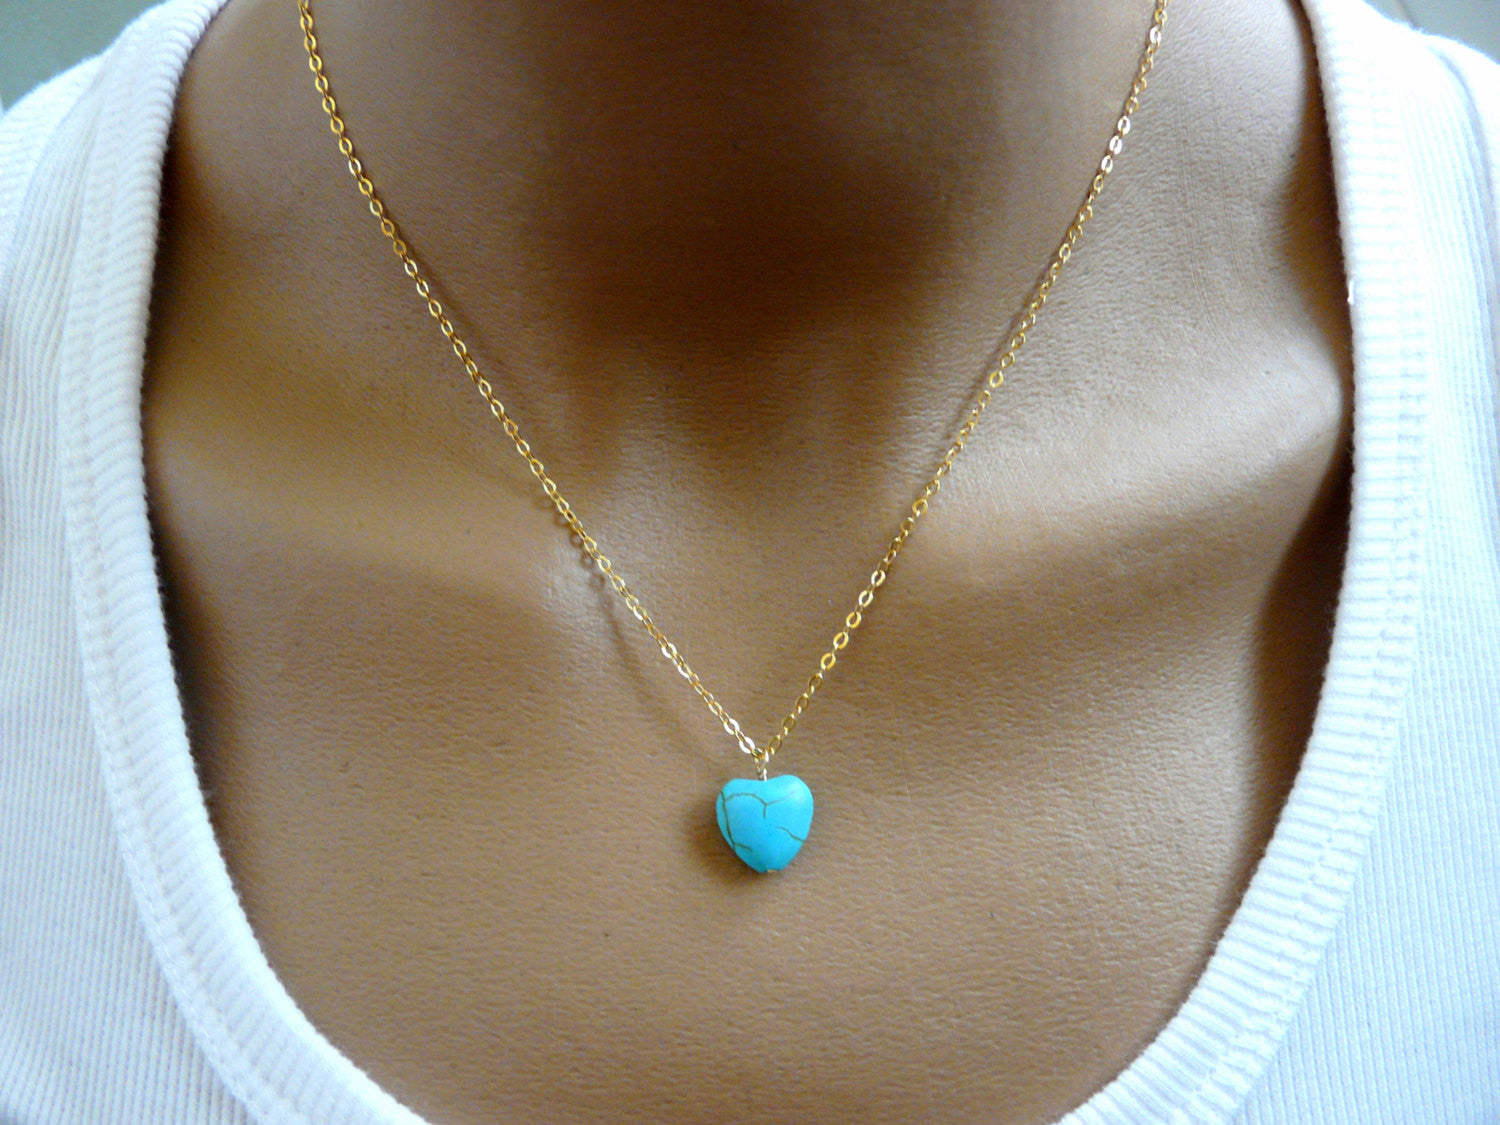 Turquoise Heart necklace - OpaLandJewelry